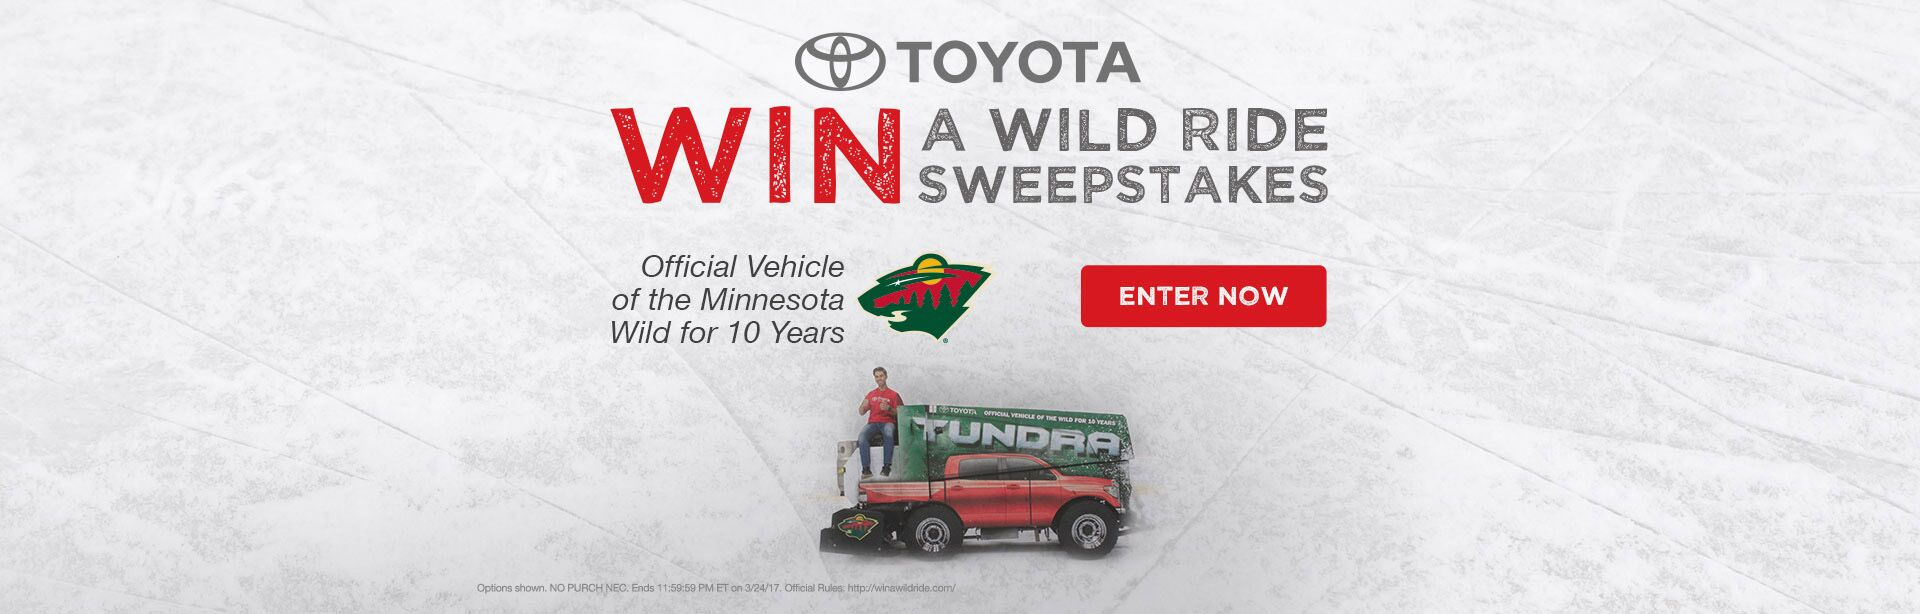 Wild Ride Sweepstakes